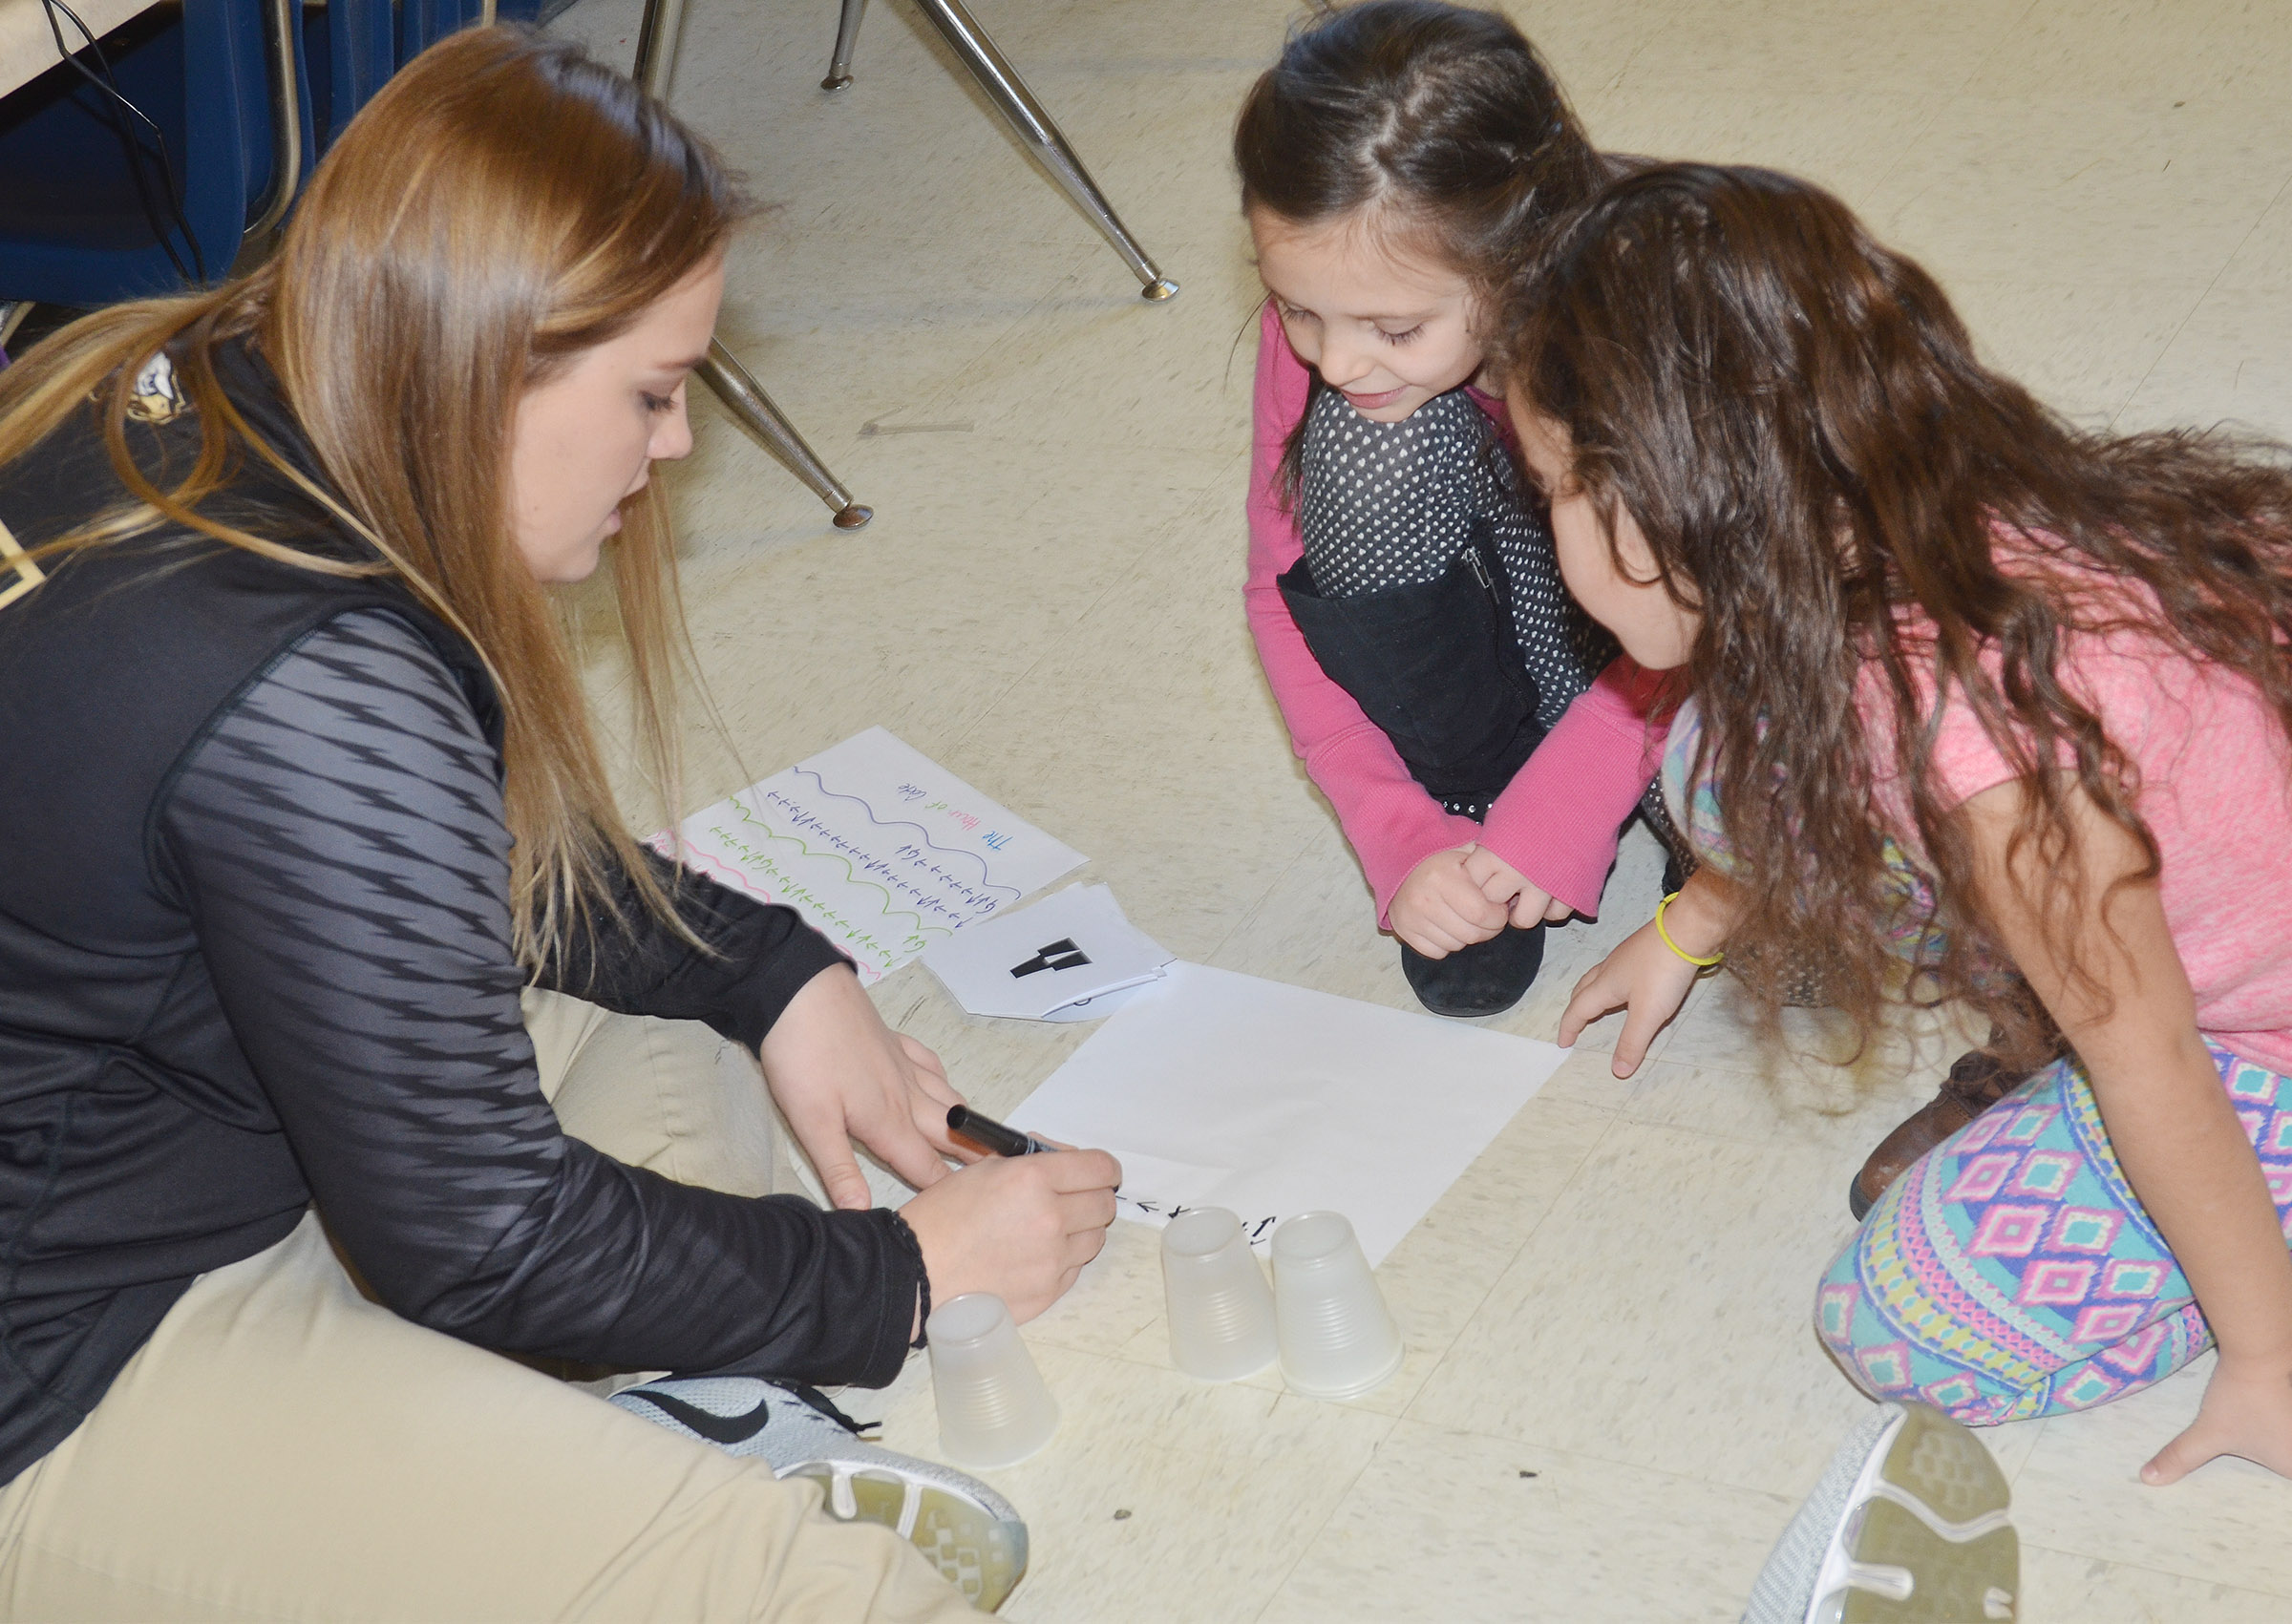 CHS senior Brenna Wethington teaches CES first-graders Serenity Taylor, center, and Nadia Taylor about computer coding.